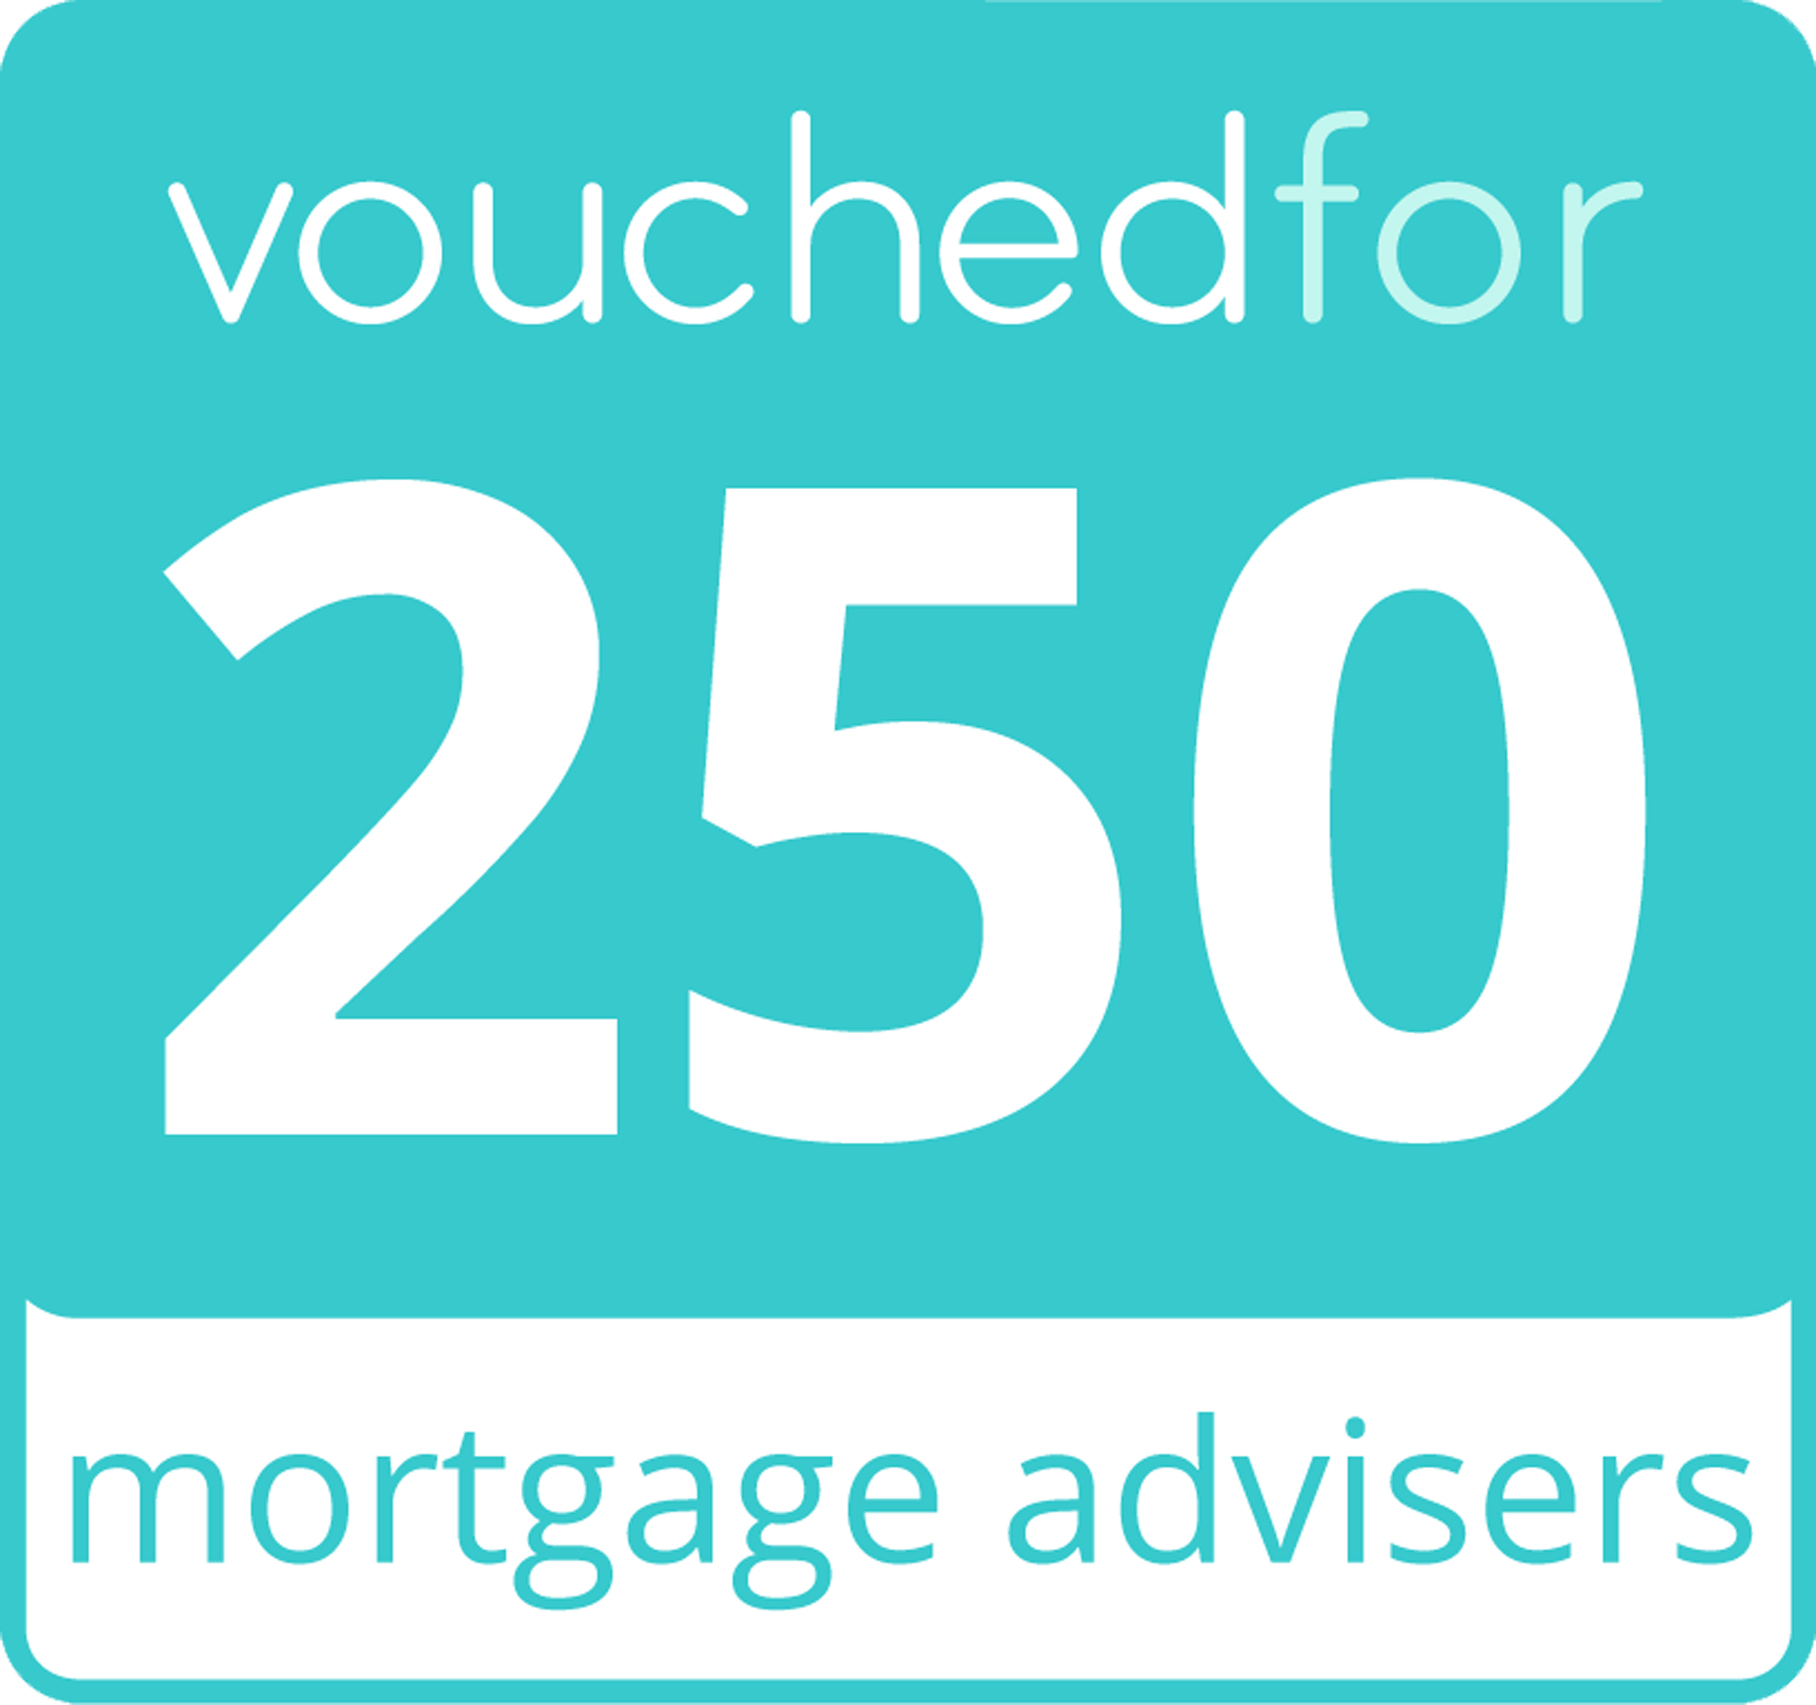 Edinburgh mortgage brokers Cailean Mortgages are VouchedFor 250 Mortgage Advisers